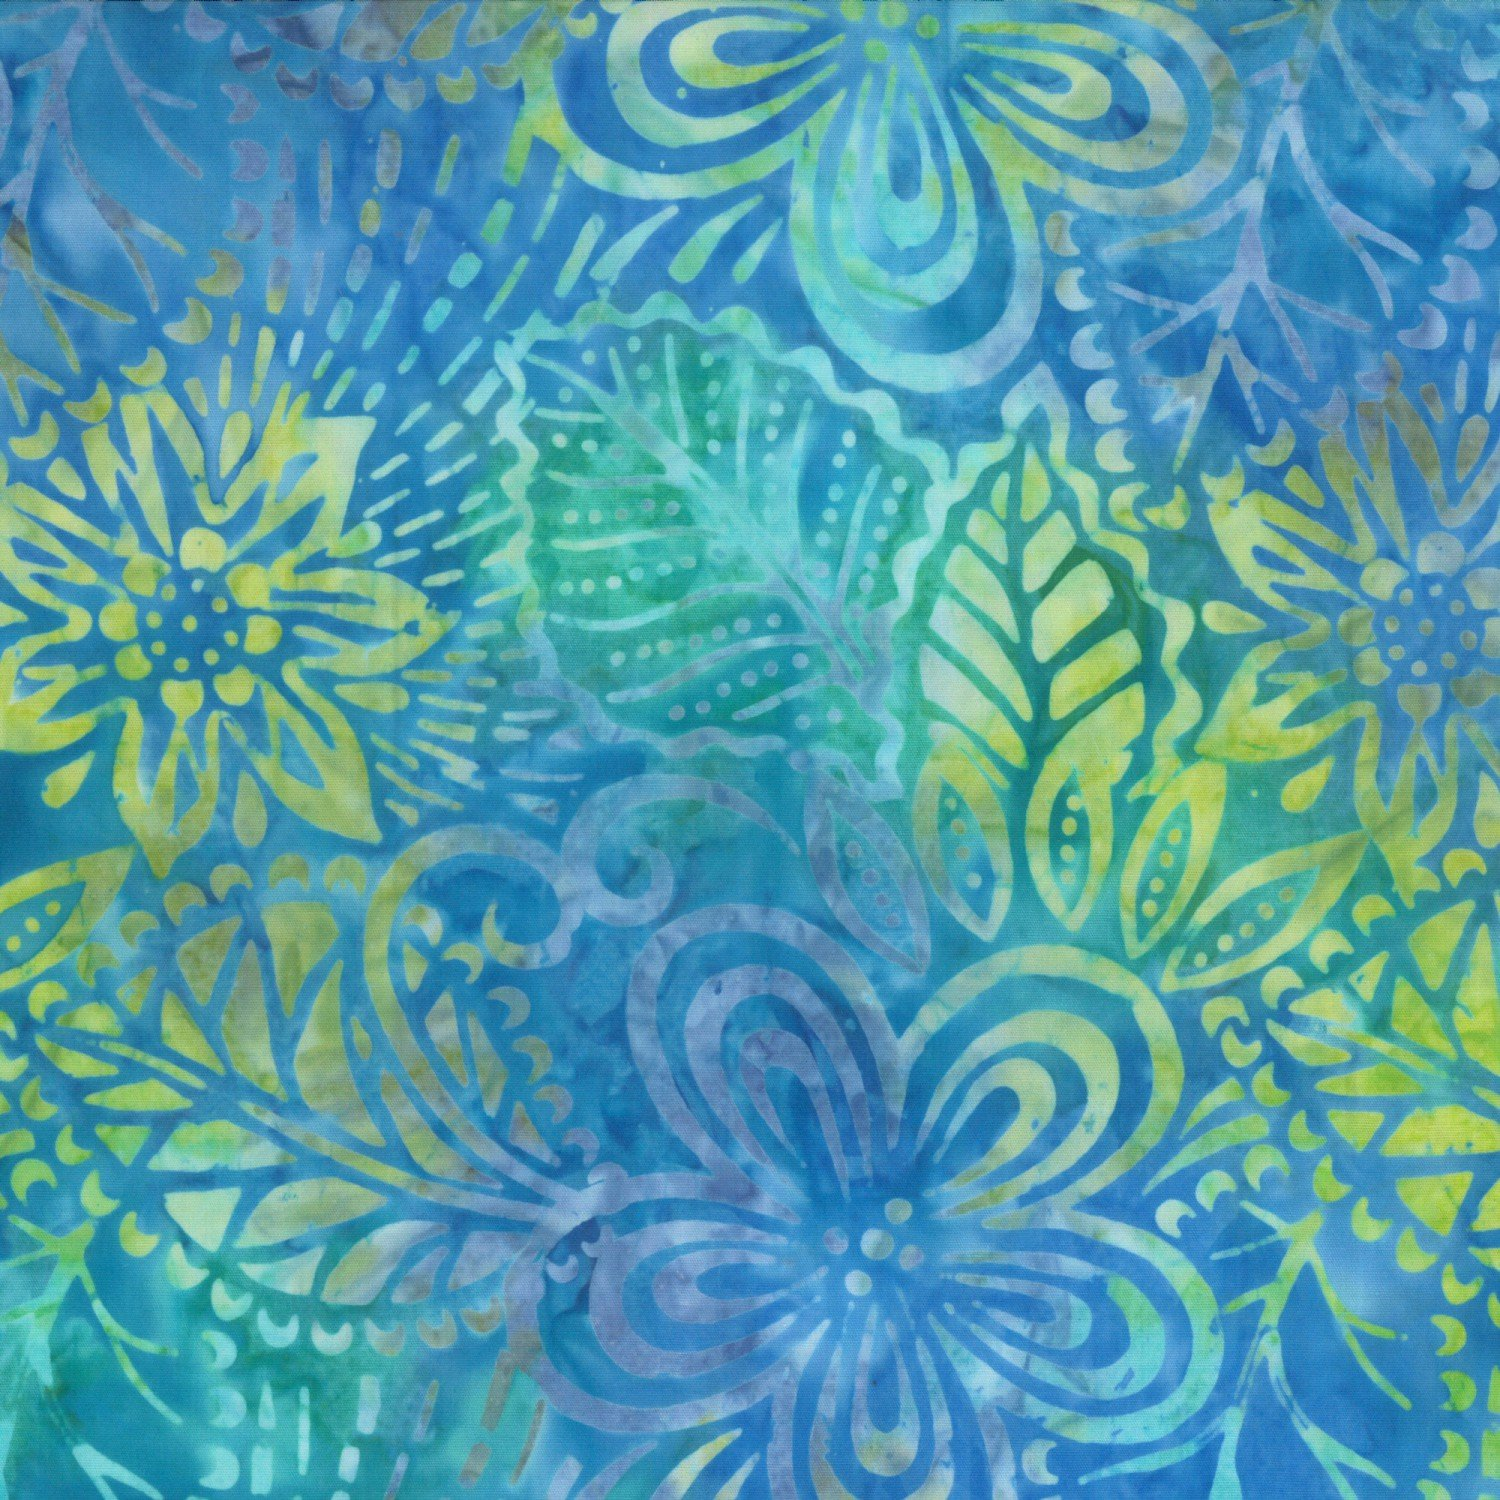 Blue Large Flowers and Leaves Batik 22152-477